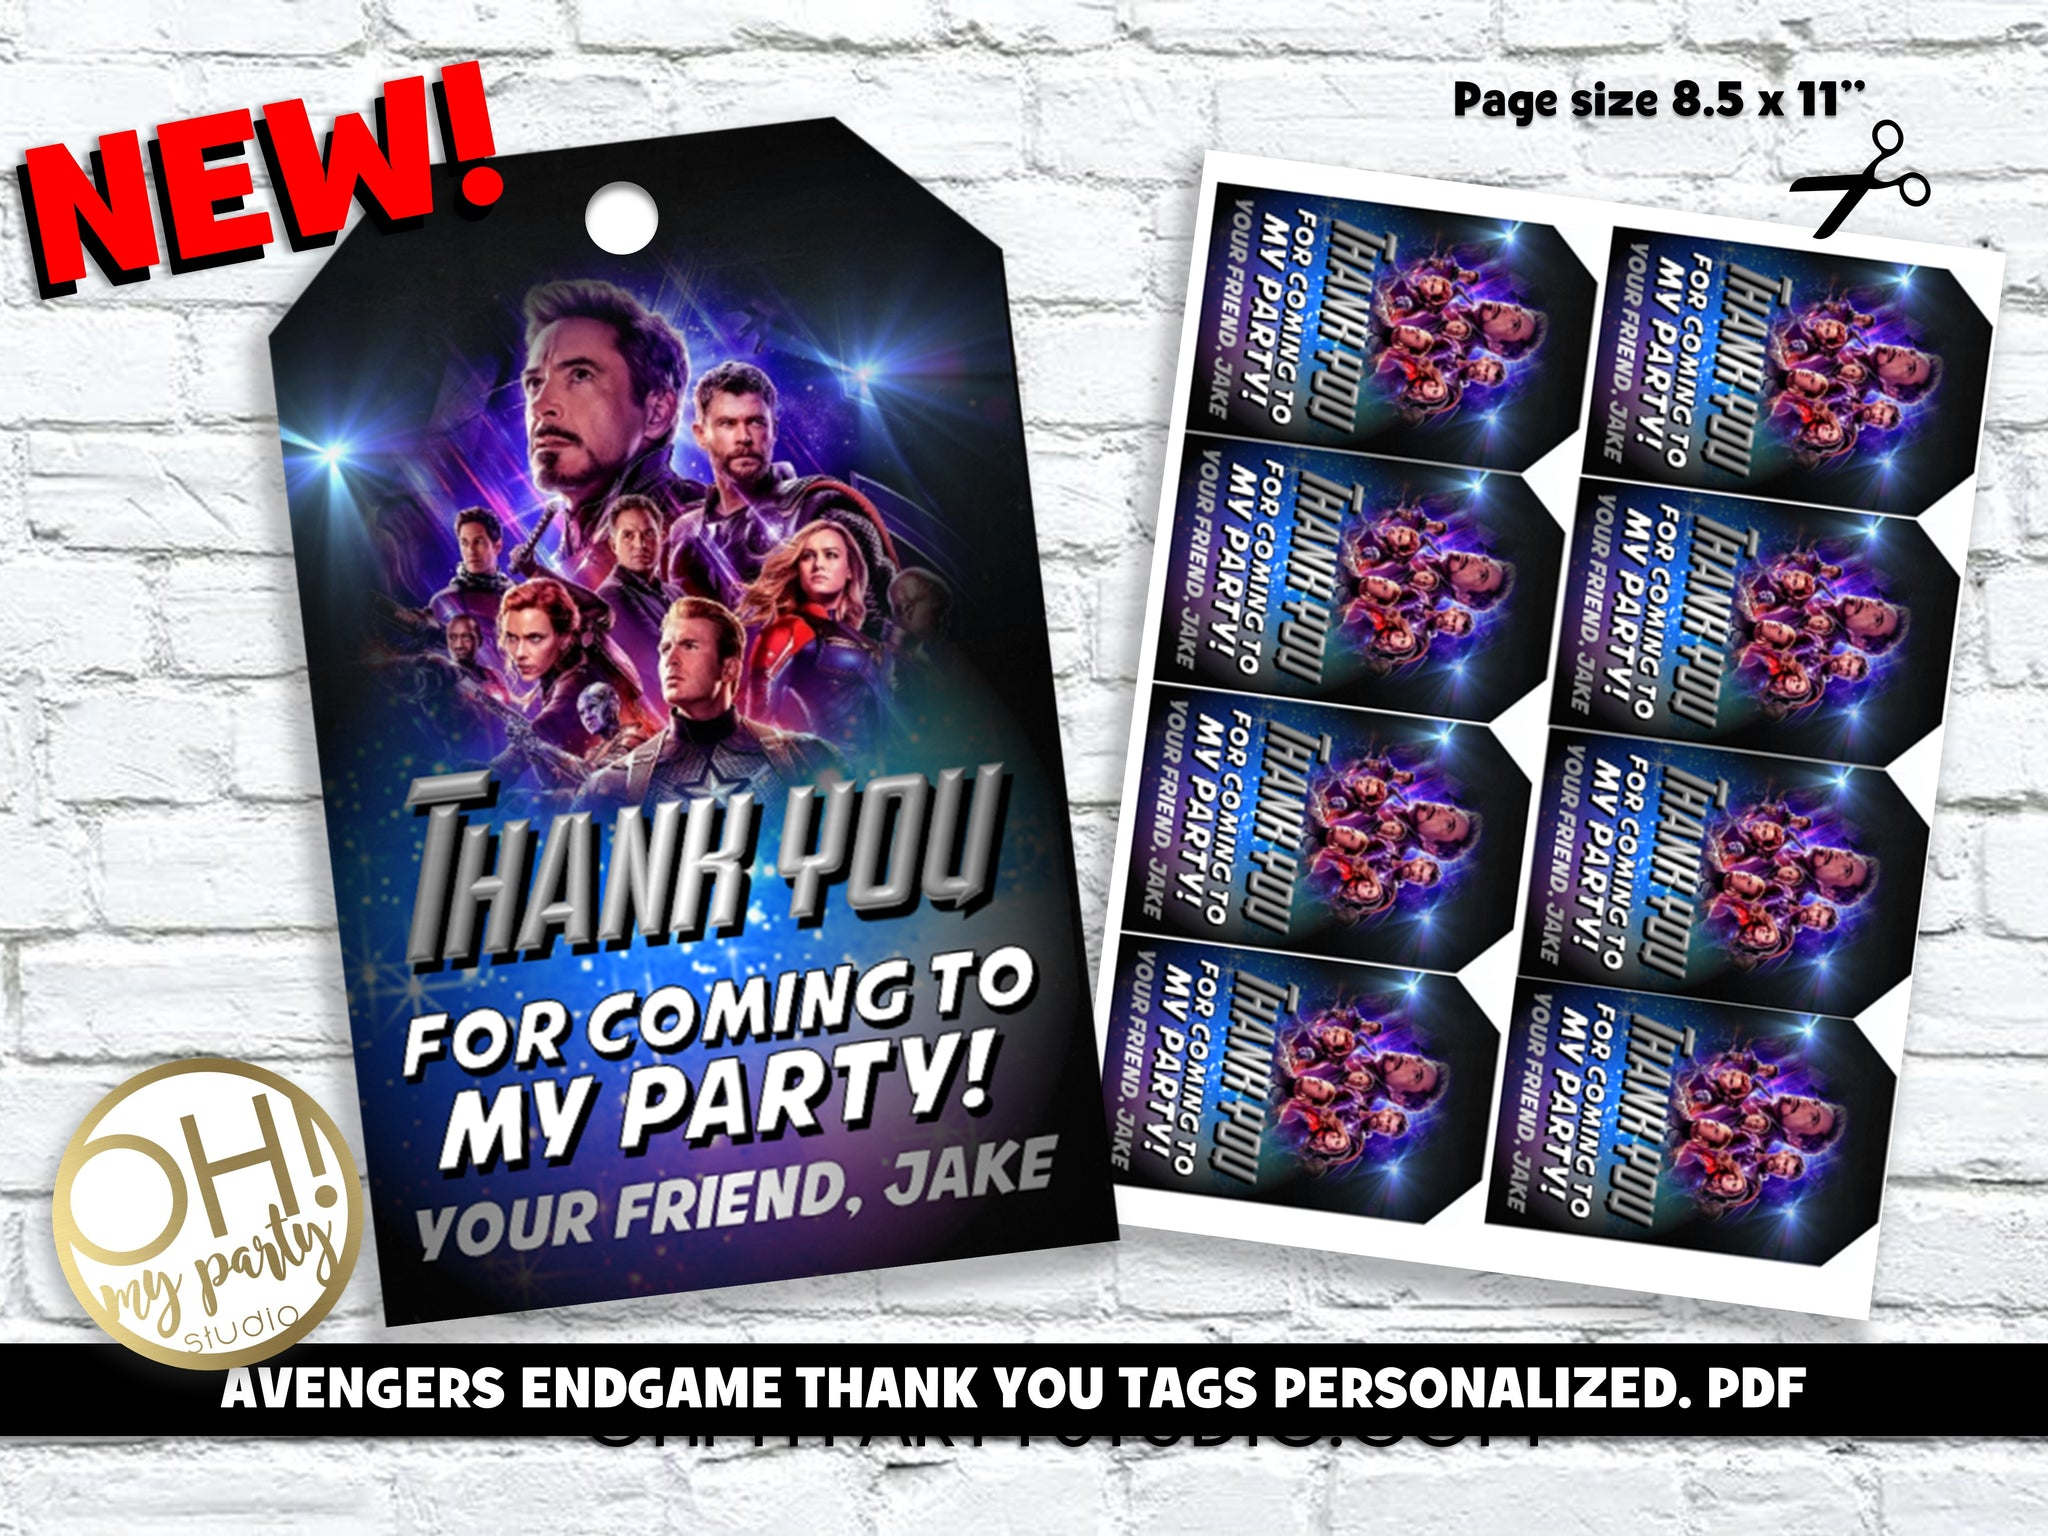 AVENGERS ENDGAME THANK YOU TAGS, AVENGERS ENDGAME THANK YOU TAGS PERSONALIZED, AVENGERS ENDGAME PARTY, AVENGERS ENDGAME BIRTHDAY, AVENGERS ENDGAME PRINTABLES, AVENGERS ENDGAME TAGS, AVENGERS ENDGAME THANK YOU CARD